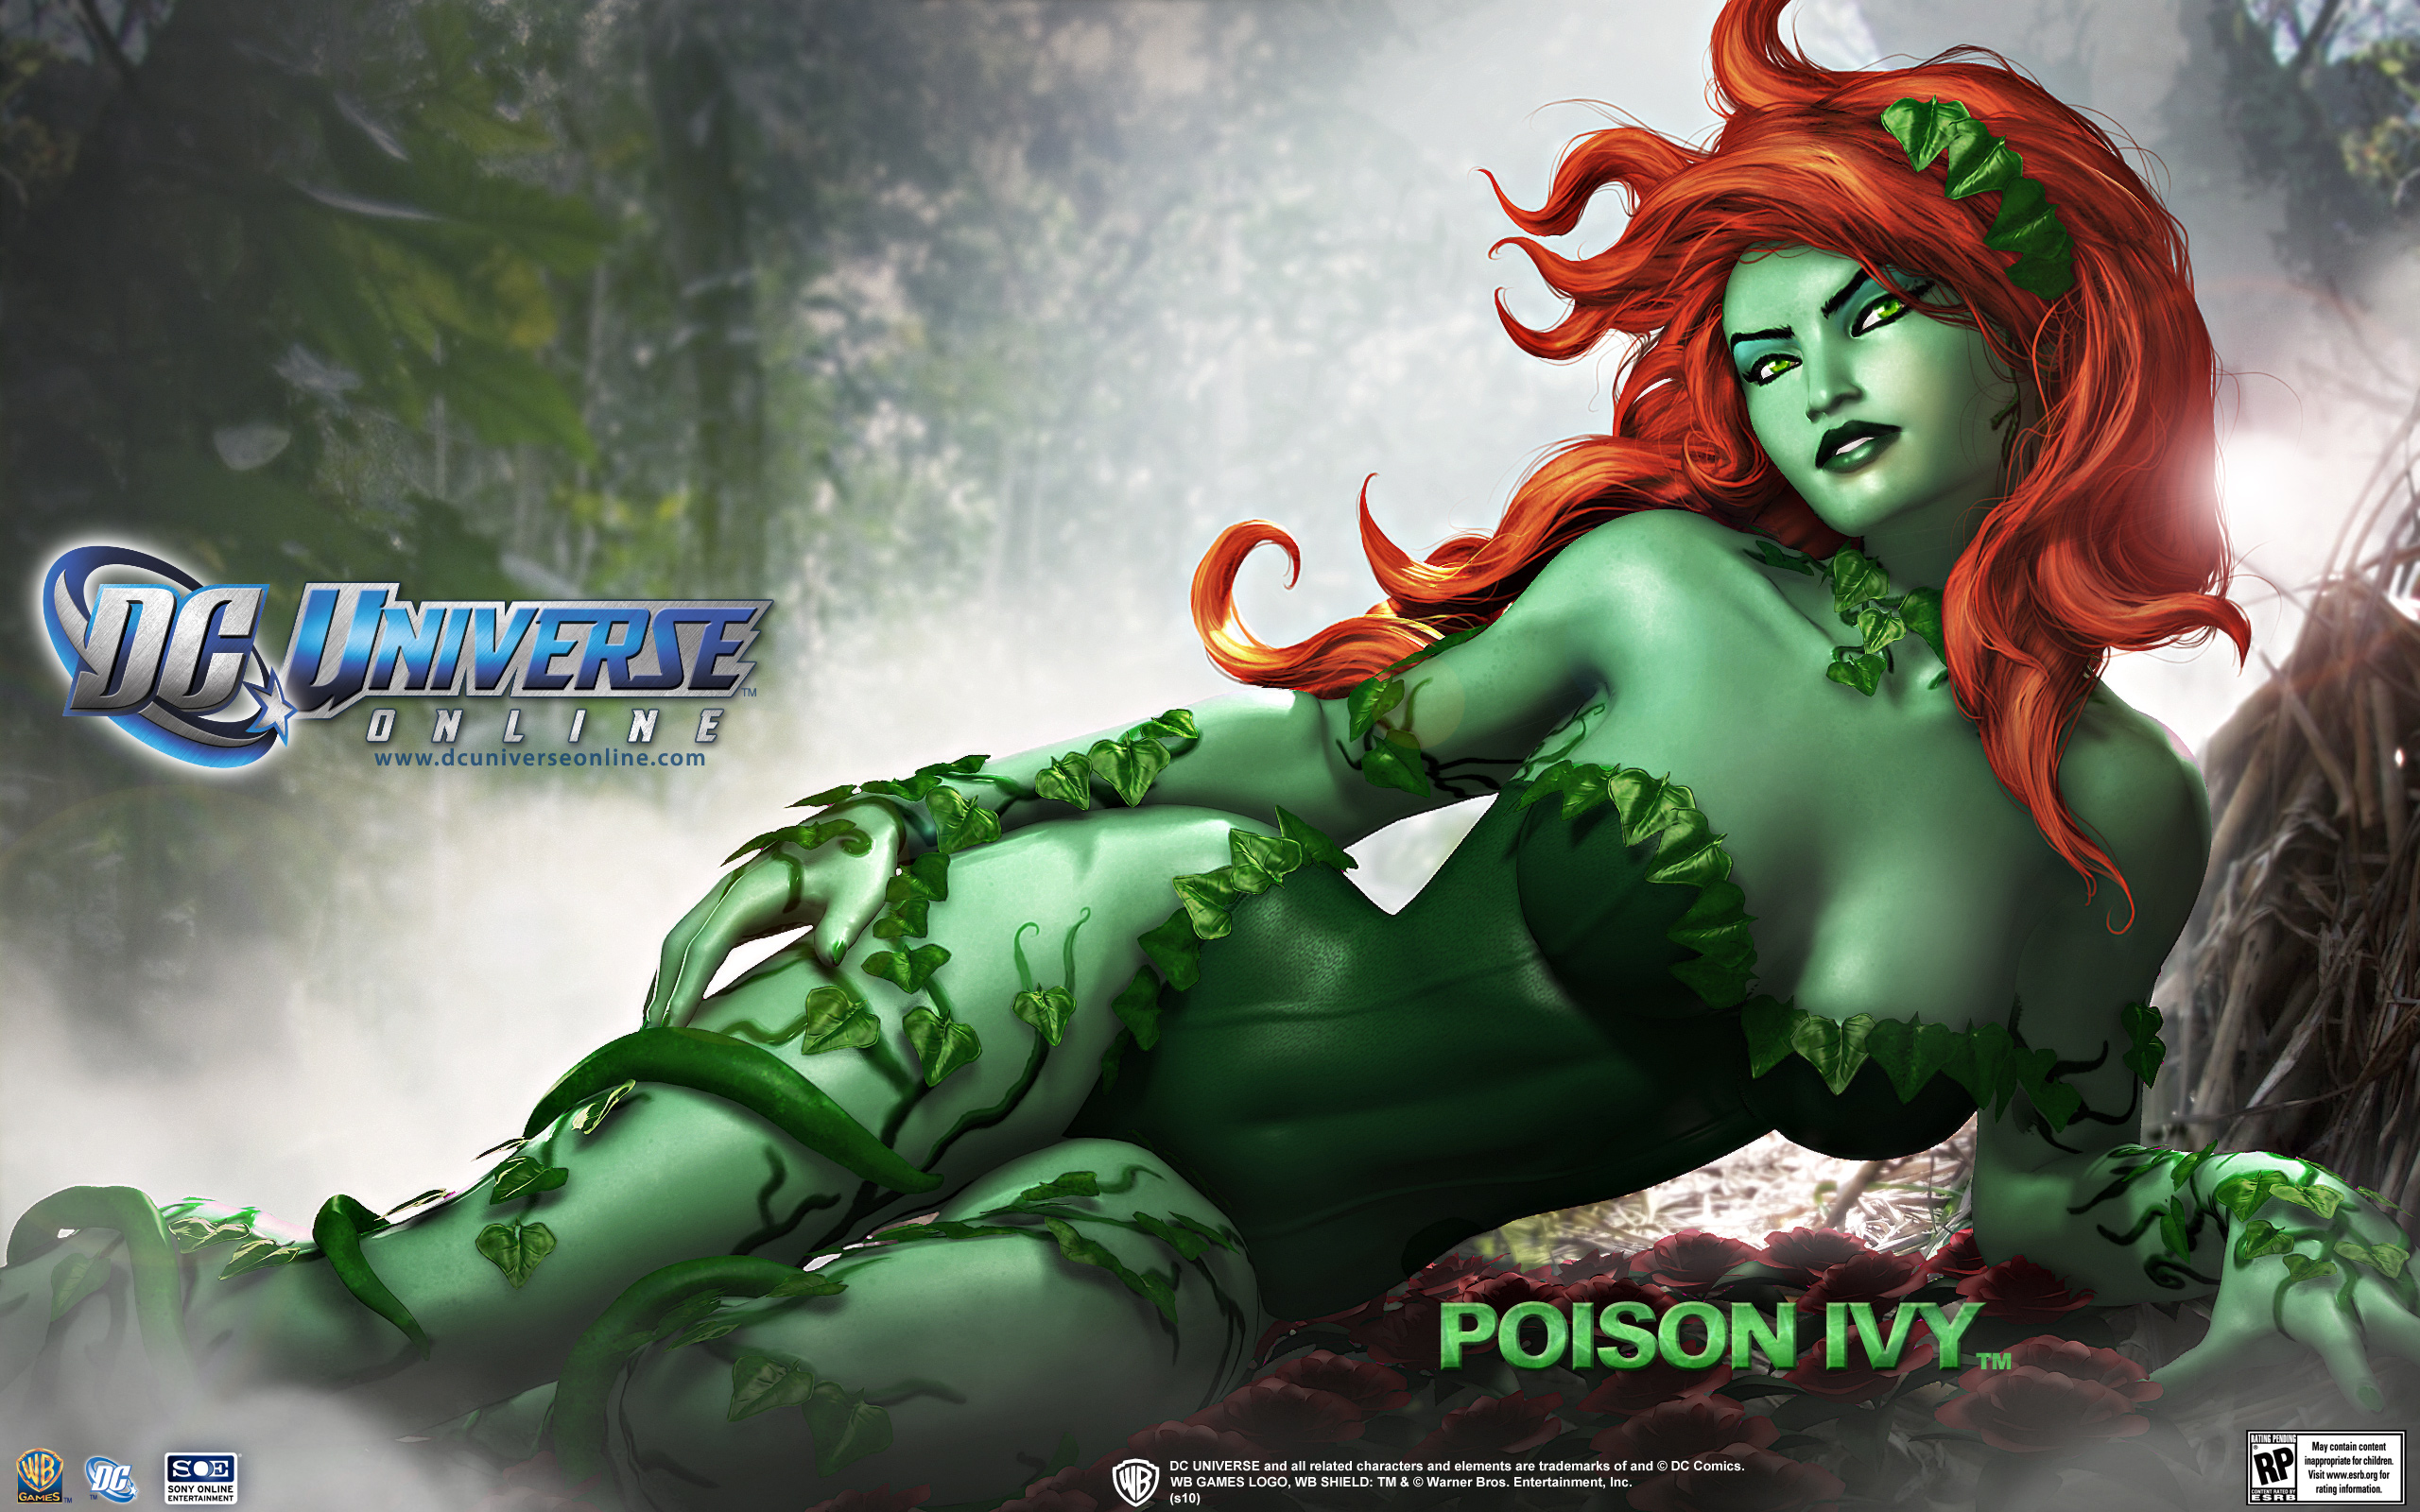 DC Universe Poison Ivy Wallpapers HD Wallpapers 2560x1600